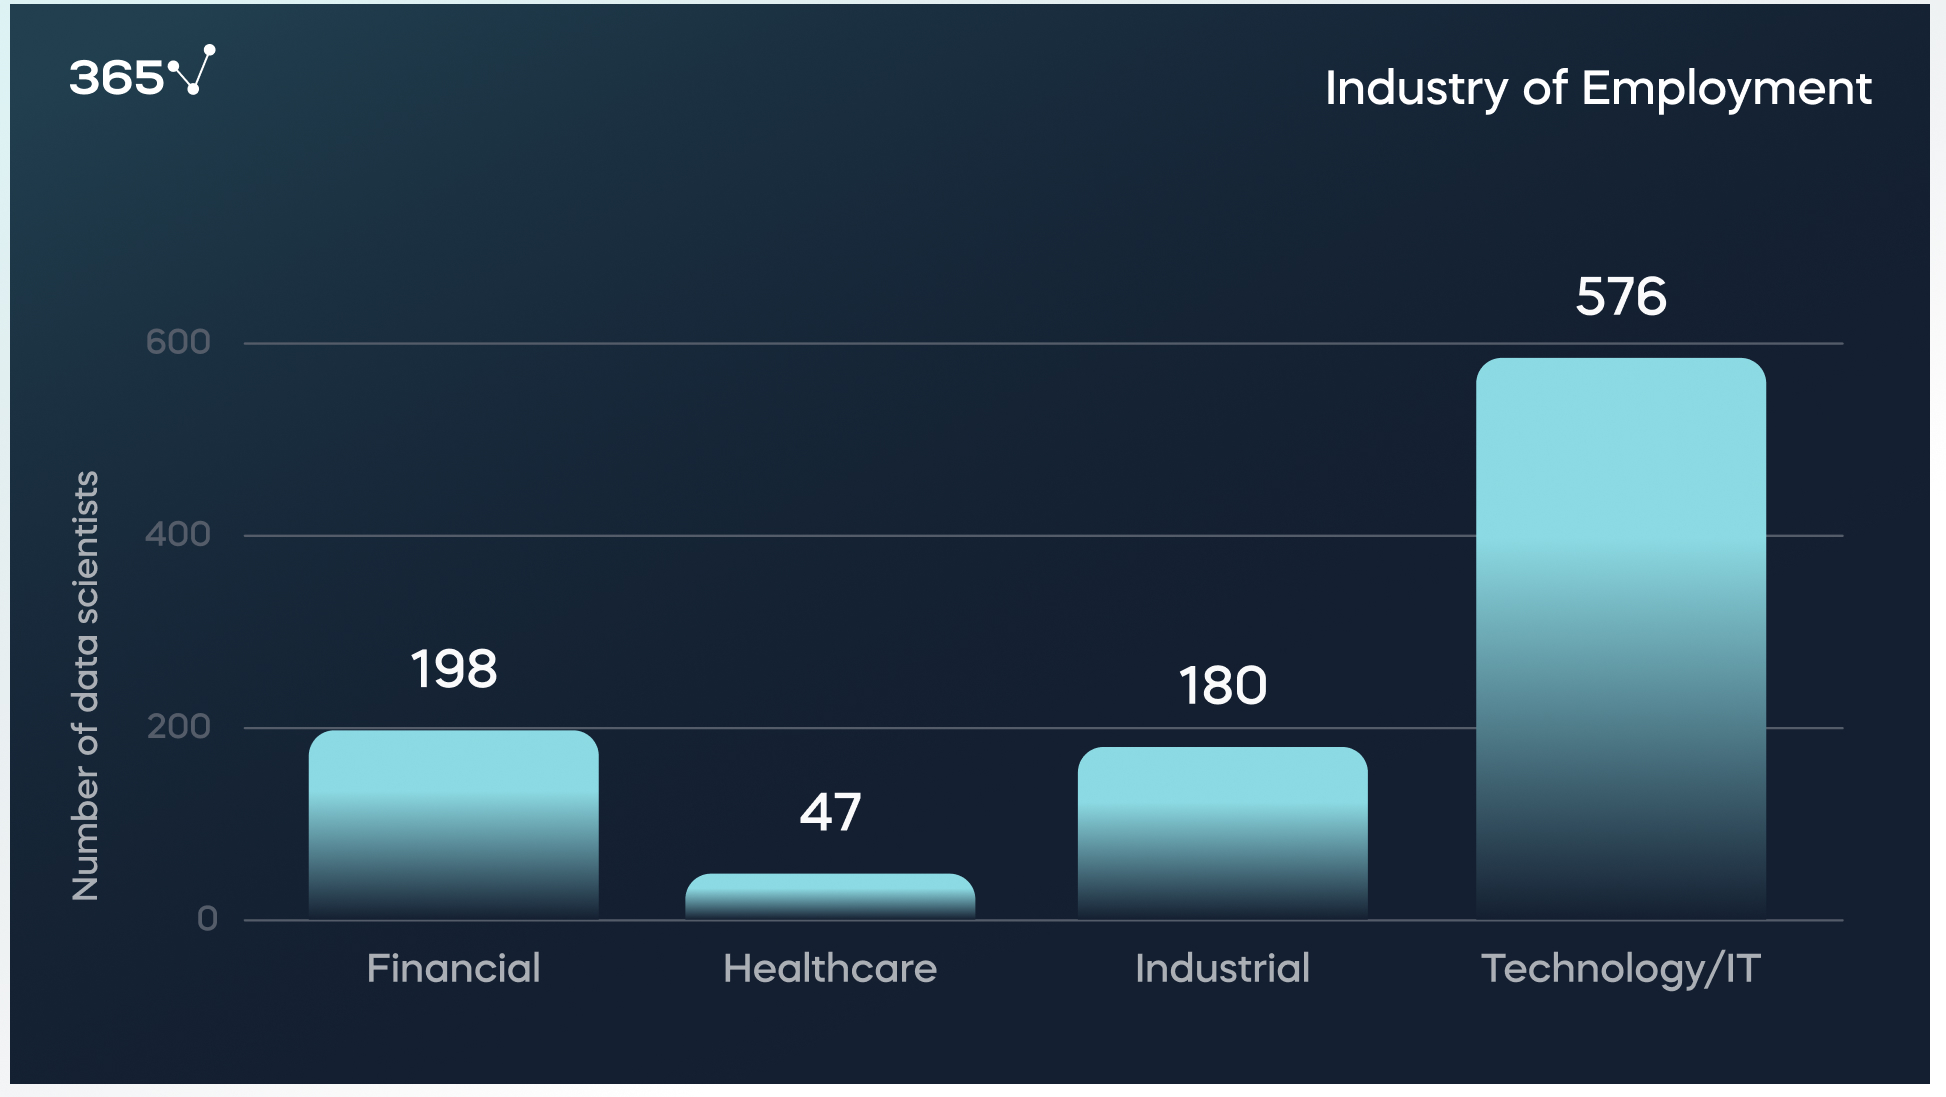 Research 1001 data scientists: Industry